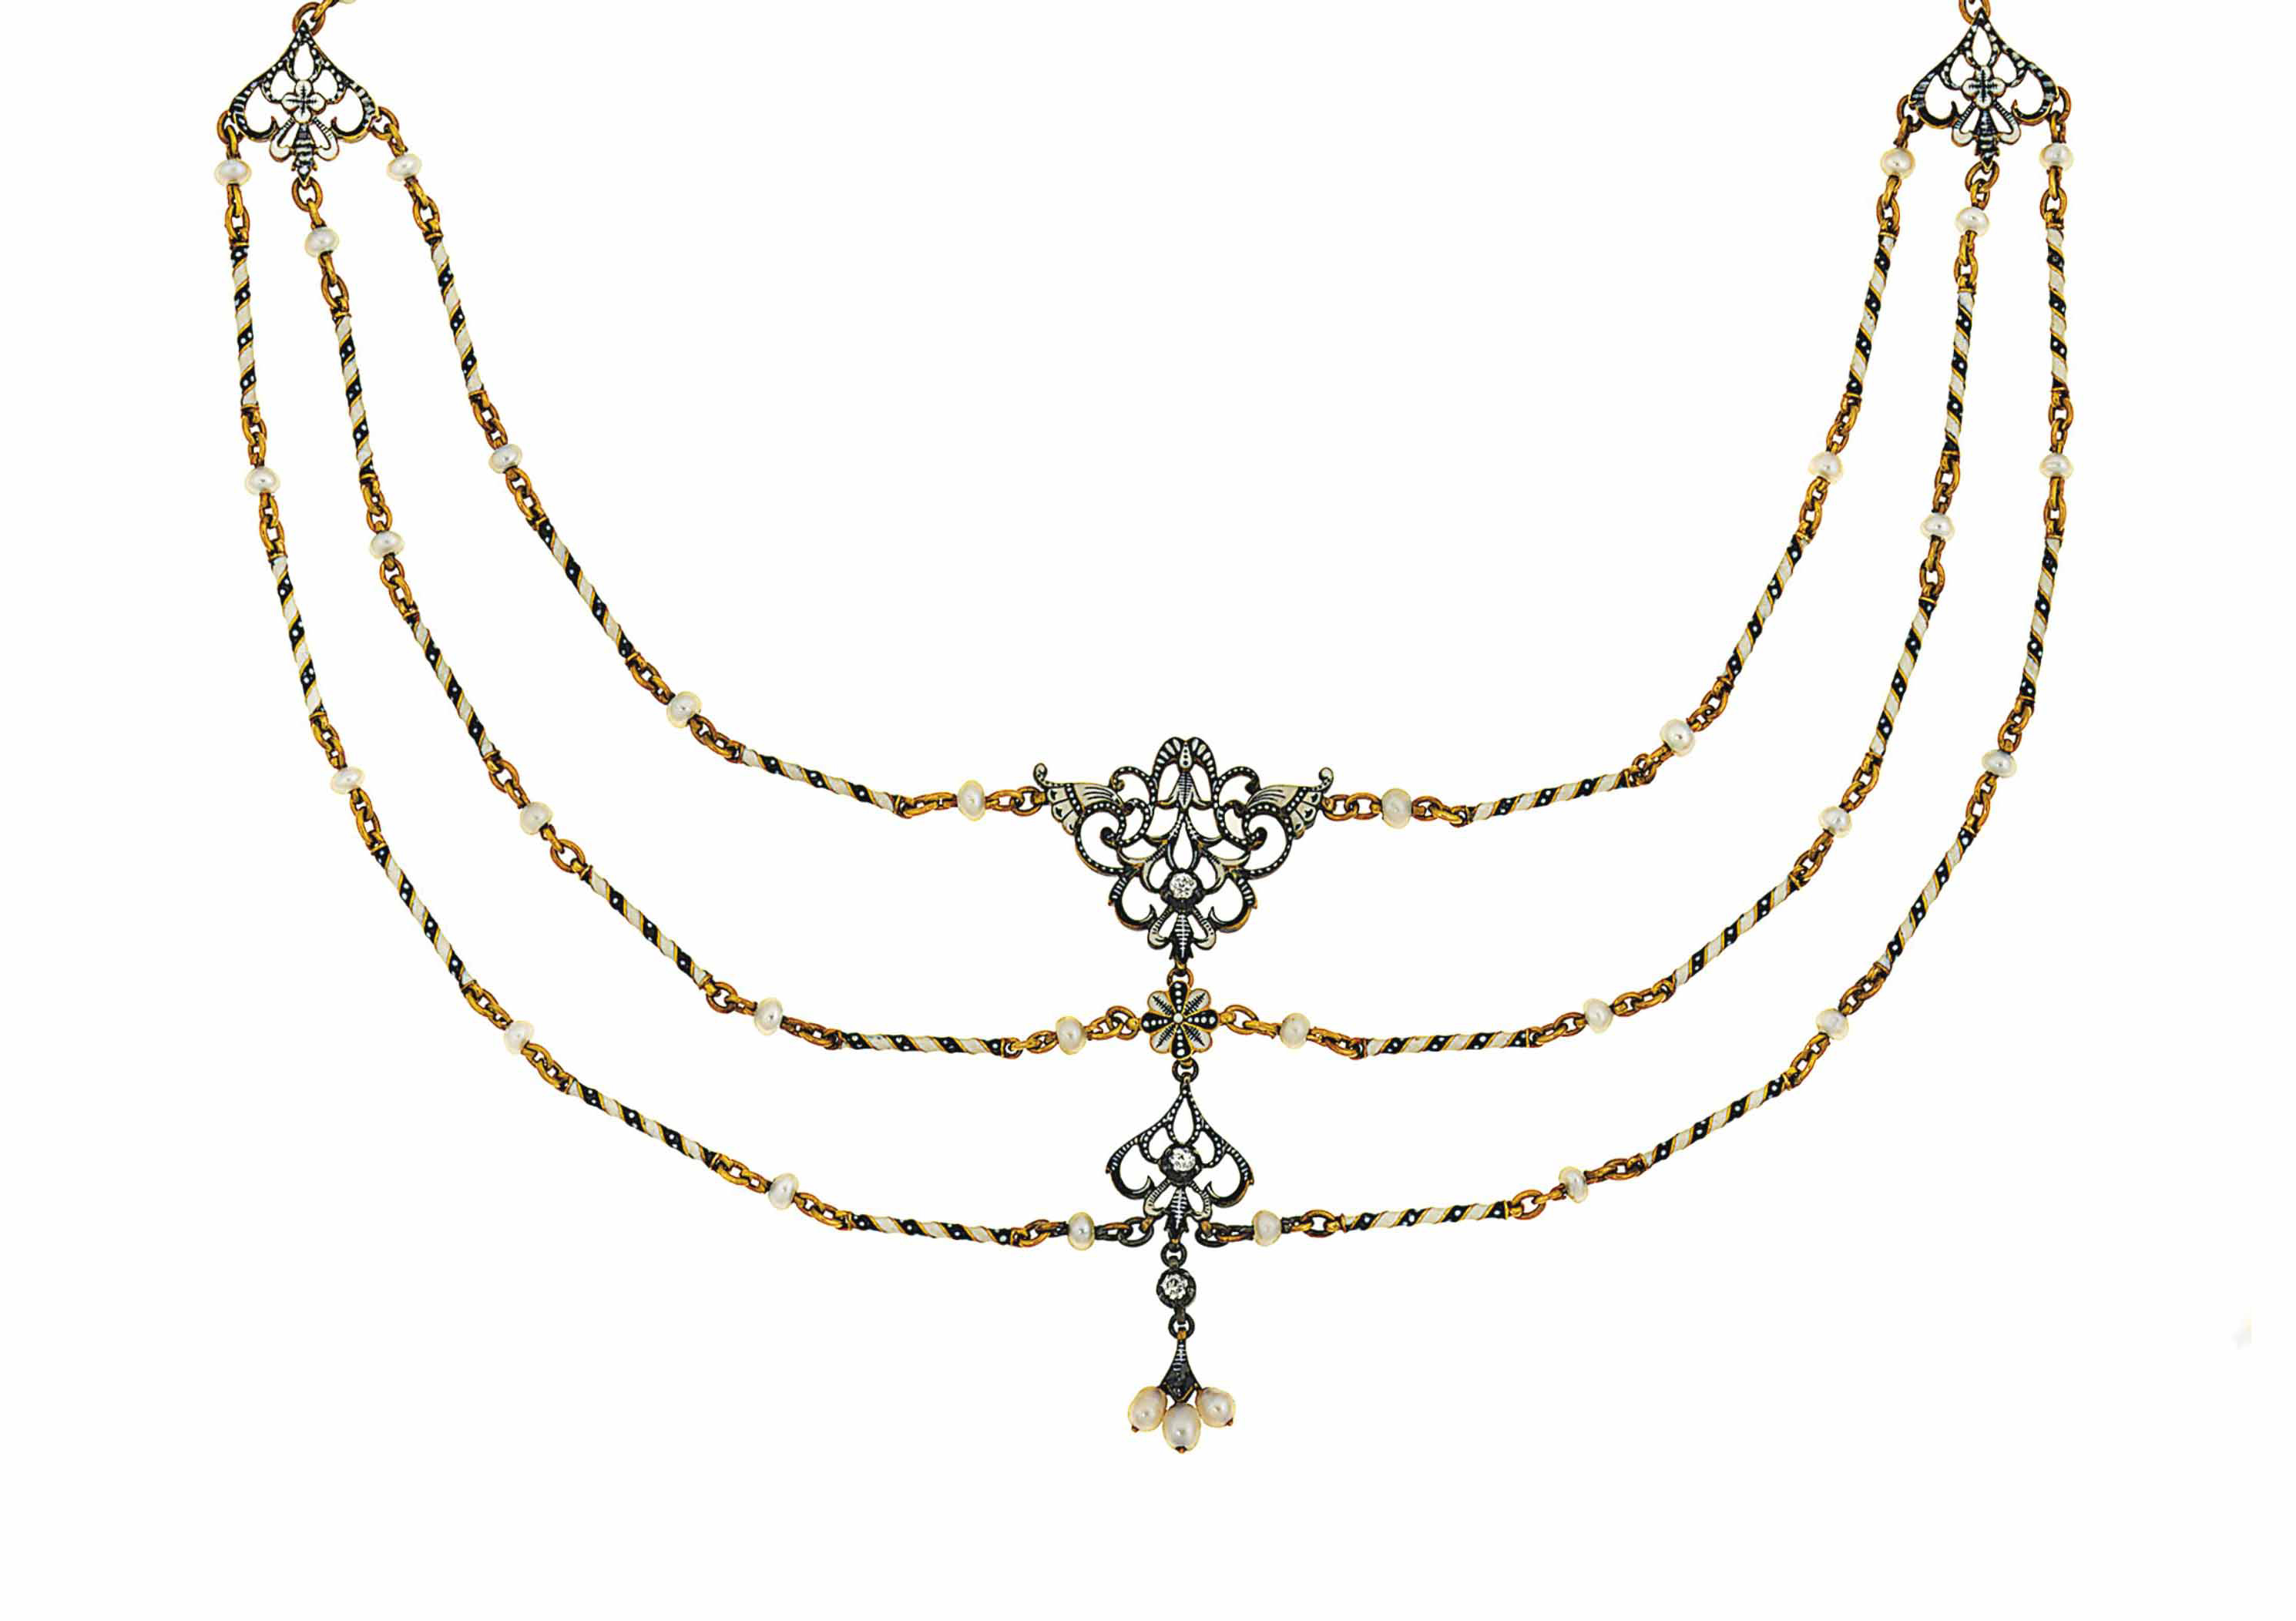 An enamel, diamond and pearl necklace, by Giuliano